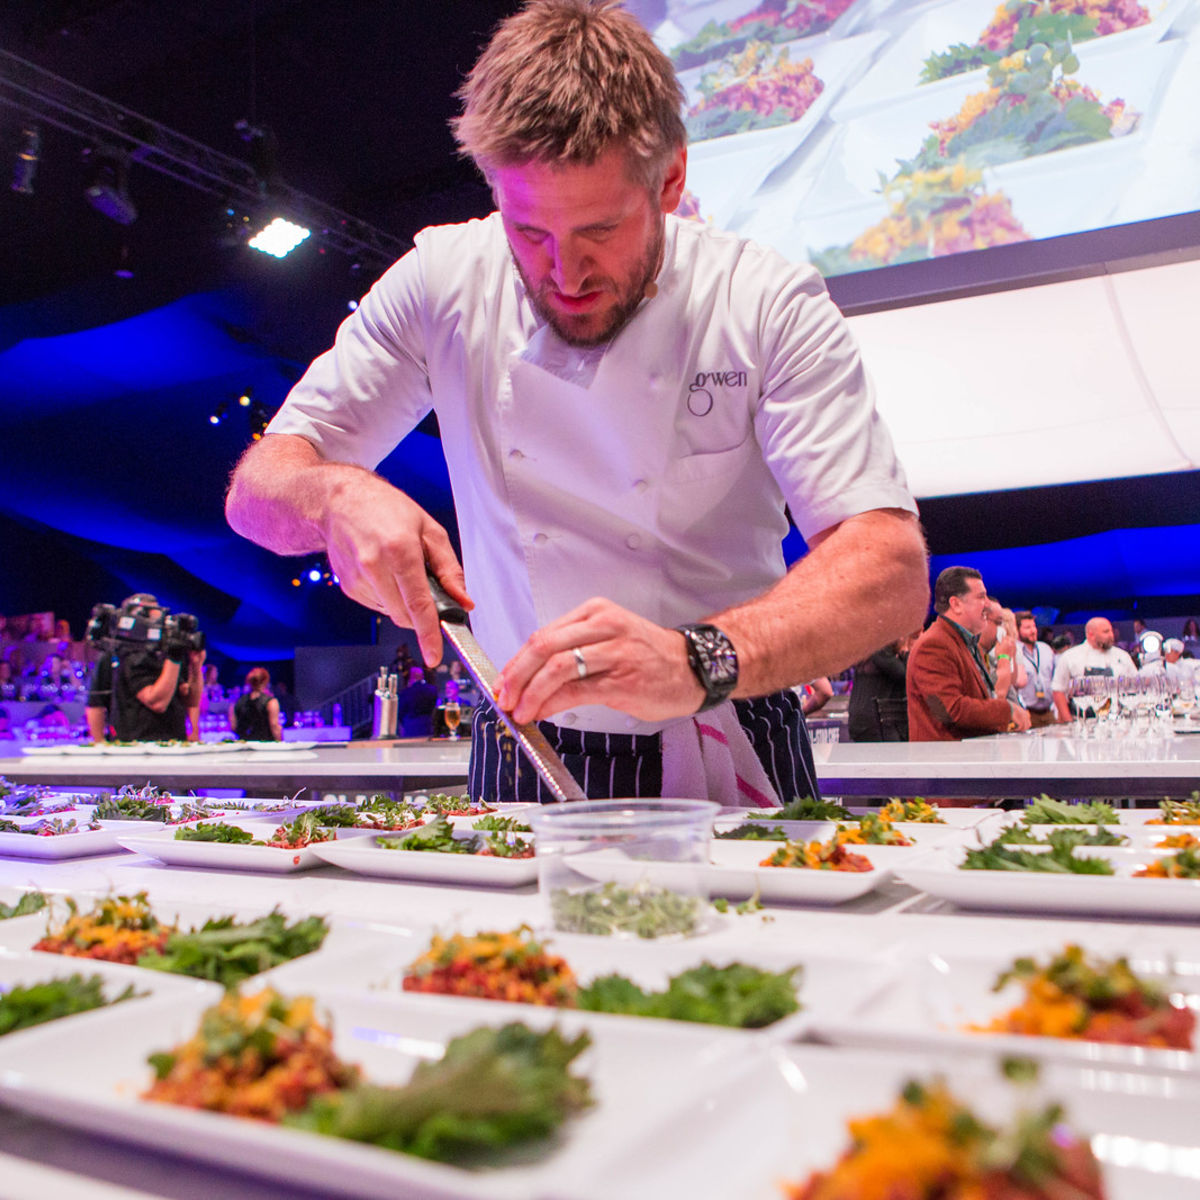 Chef prepping plates at the All-Star Chef Classic